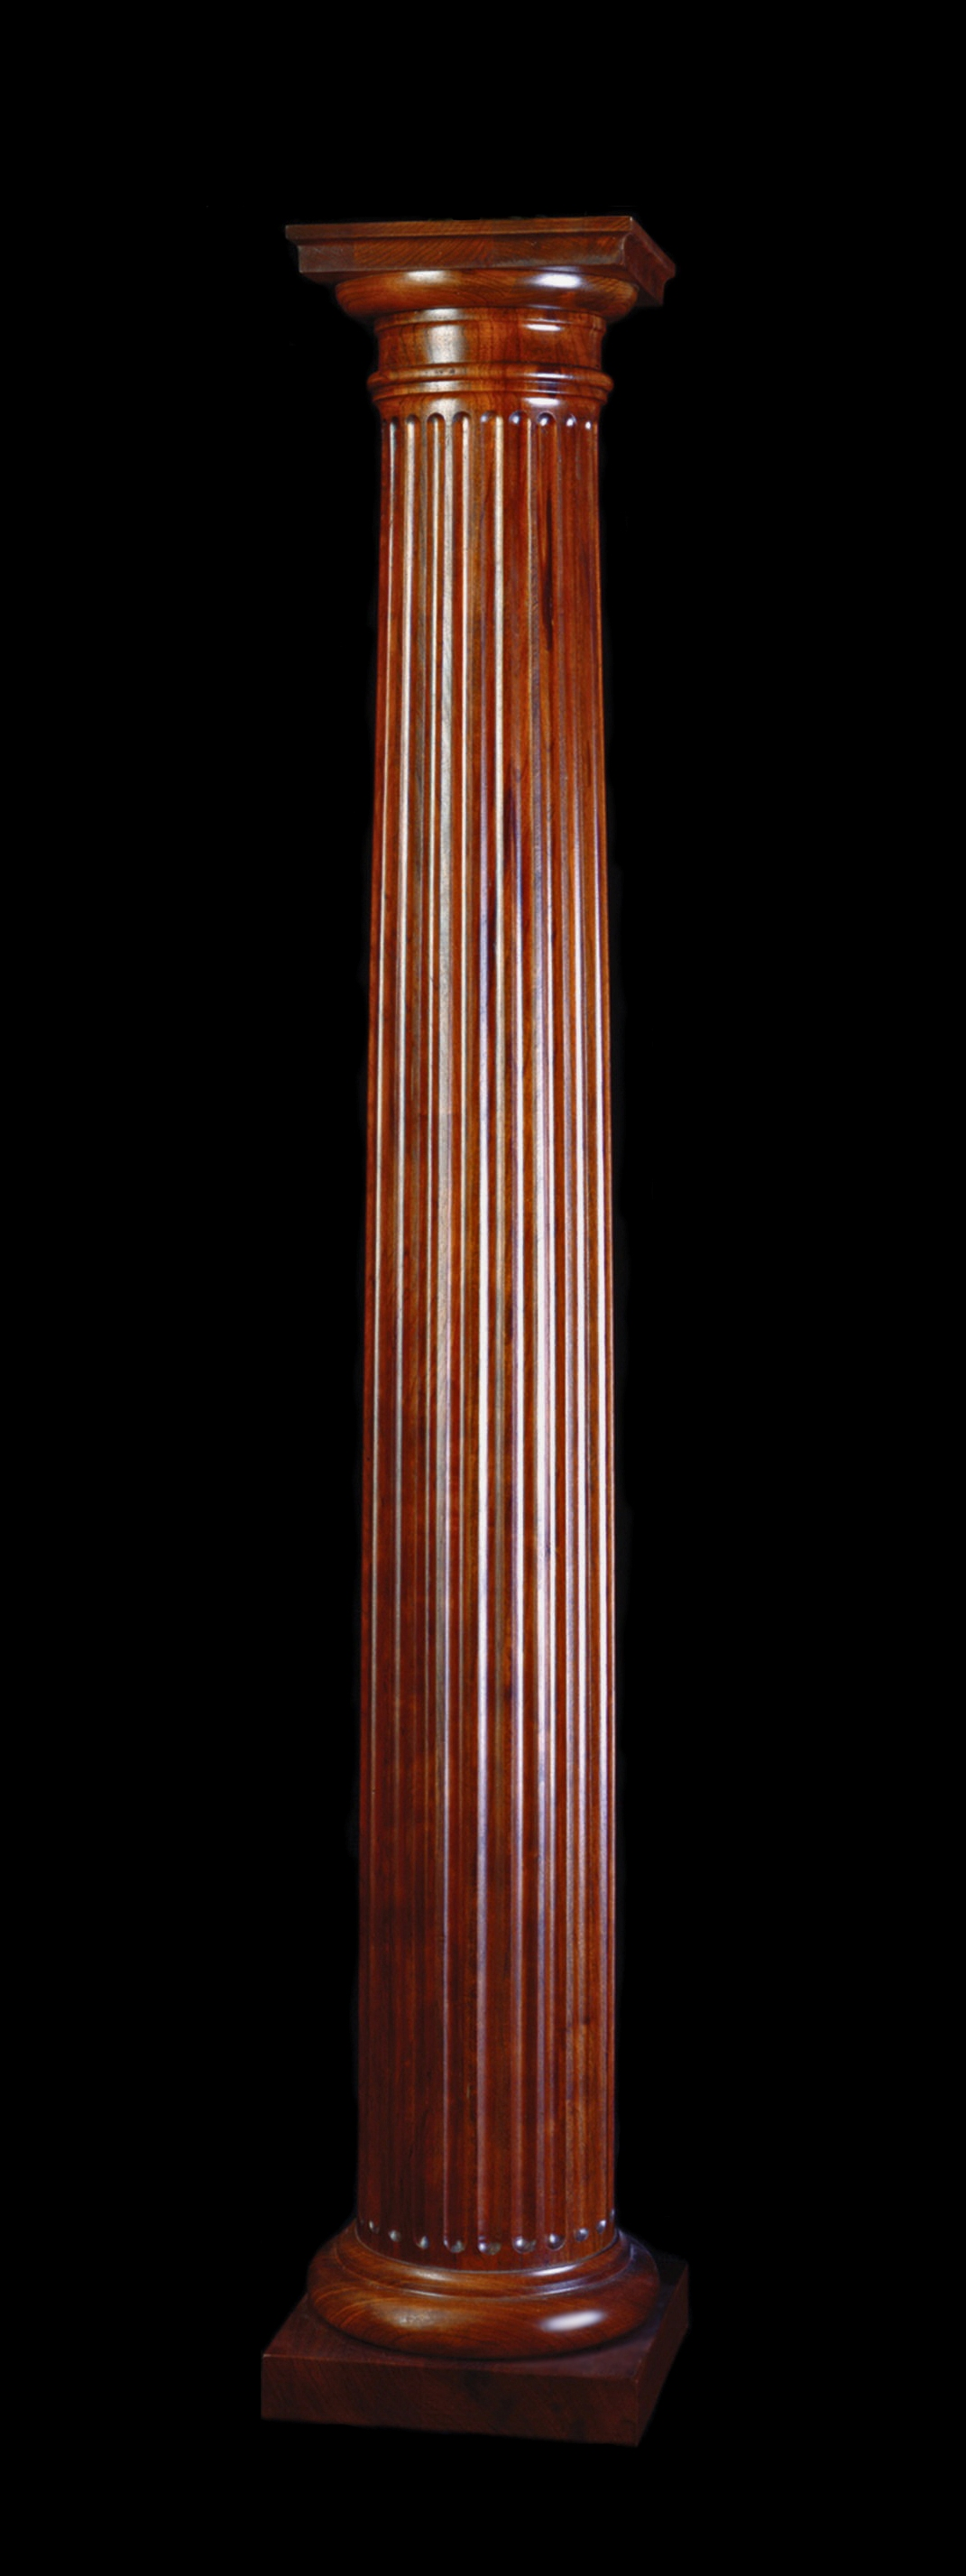 Wooden Pillars Designs : Stain grade fluted cherry wood tuscan column